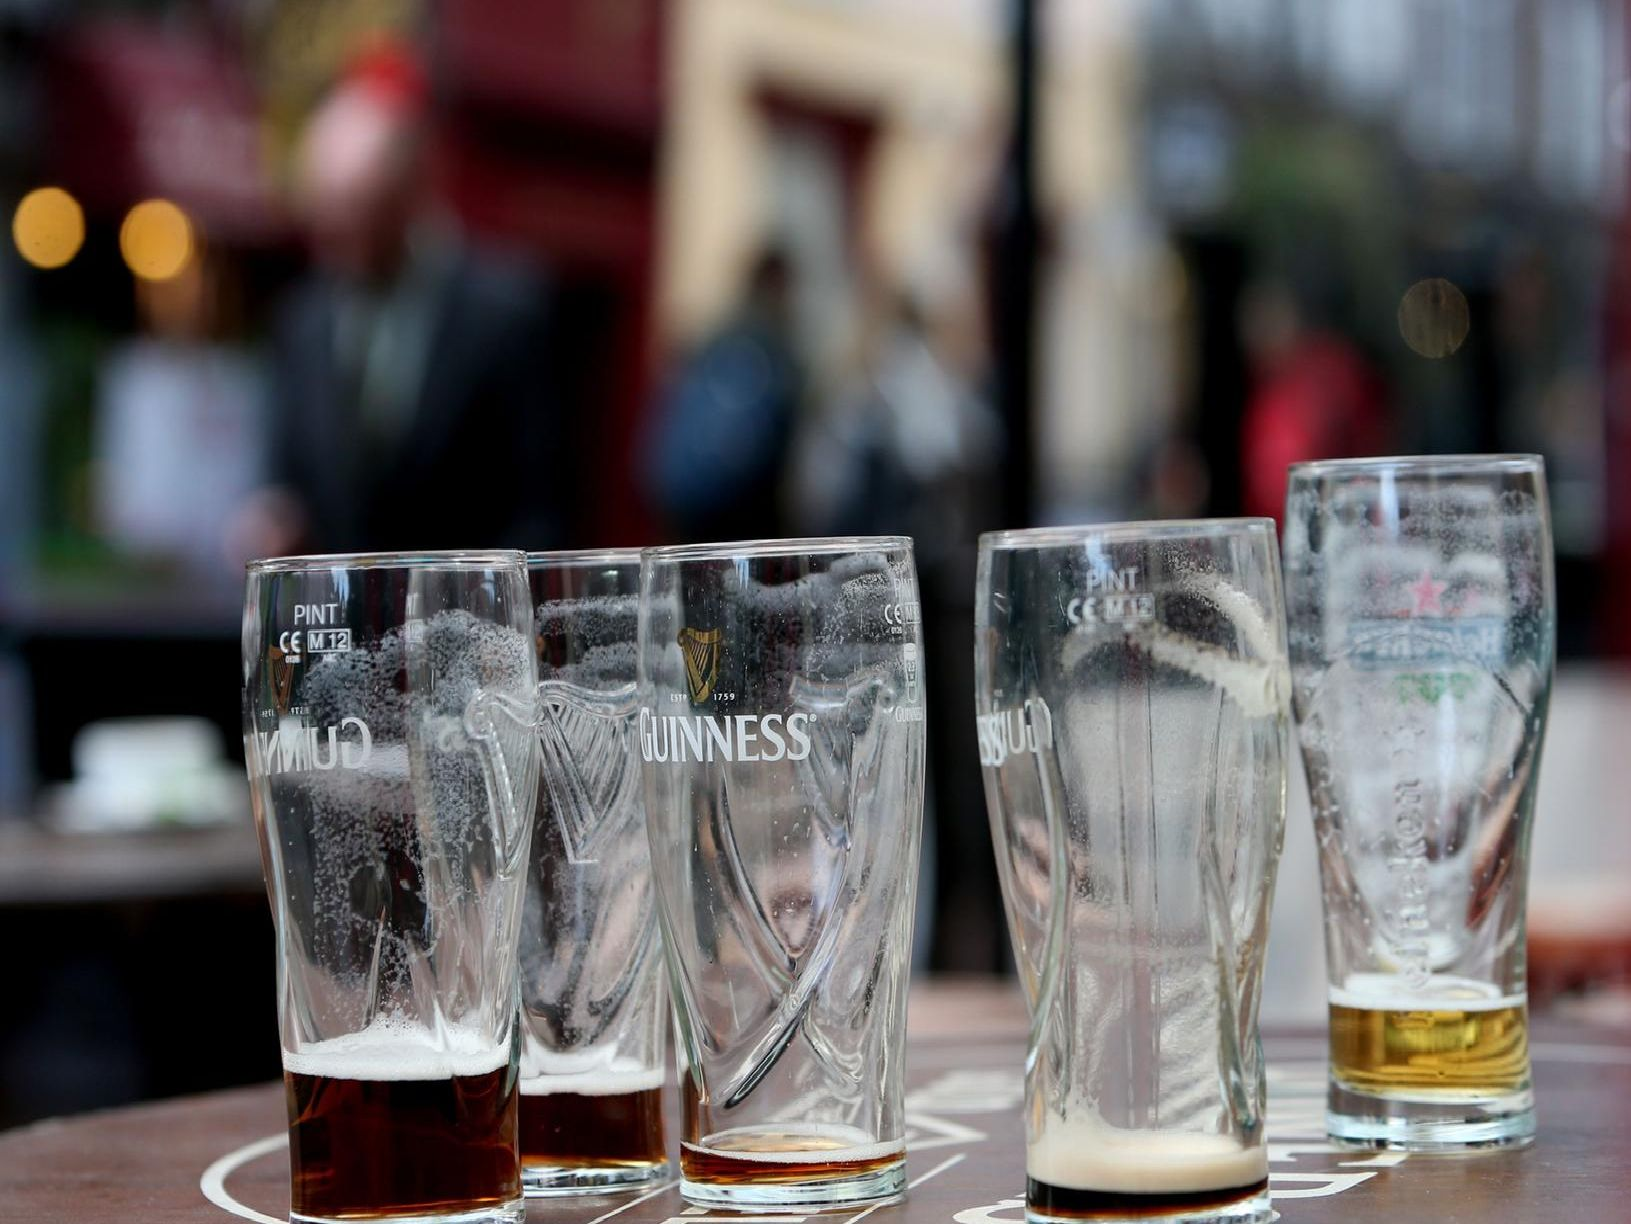 Last orders have been called at many Hartlepool pubs.